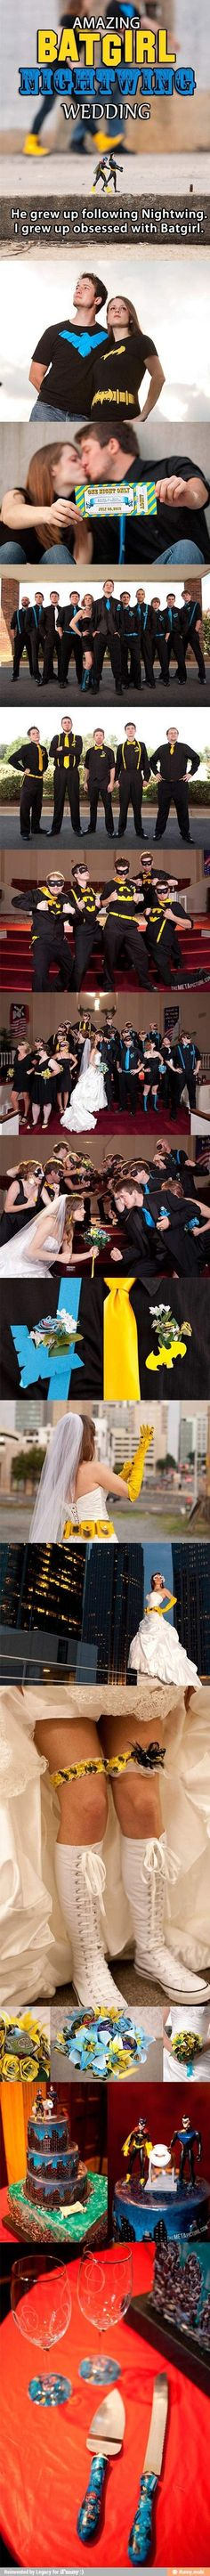 This would be cool if it was a cat women and batman wedding :)